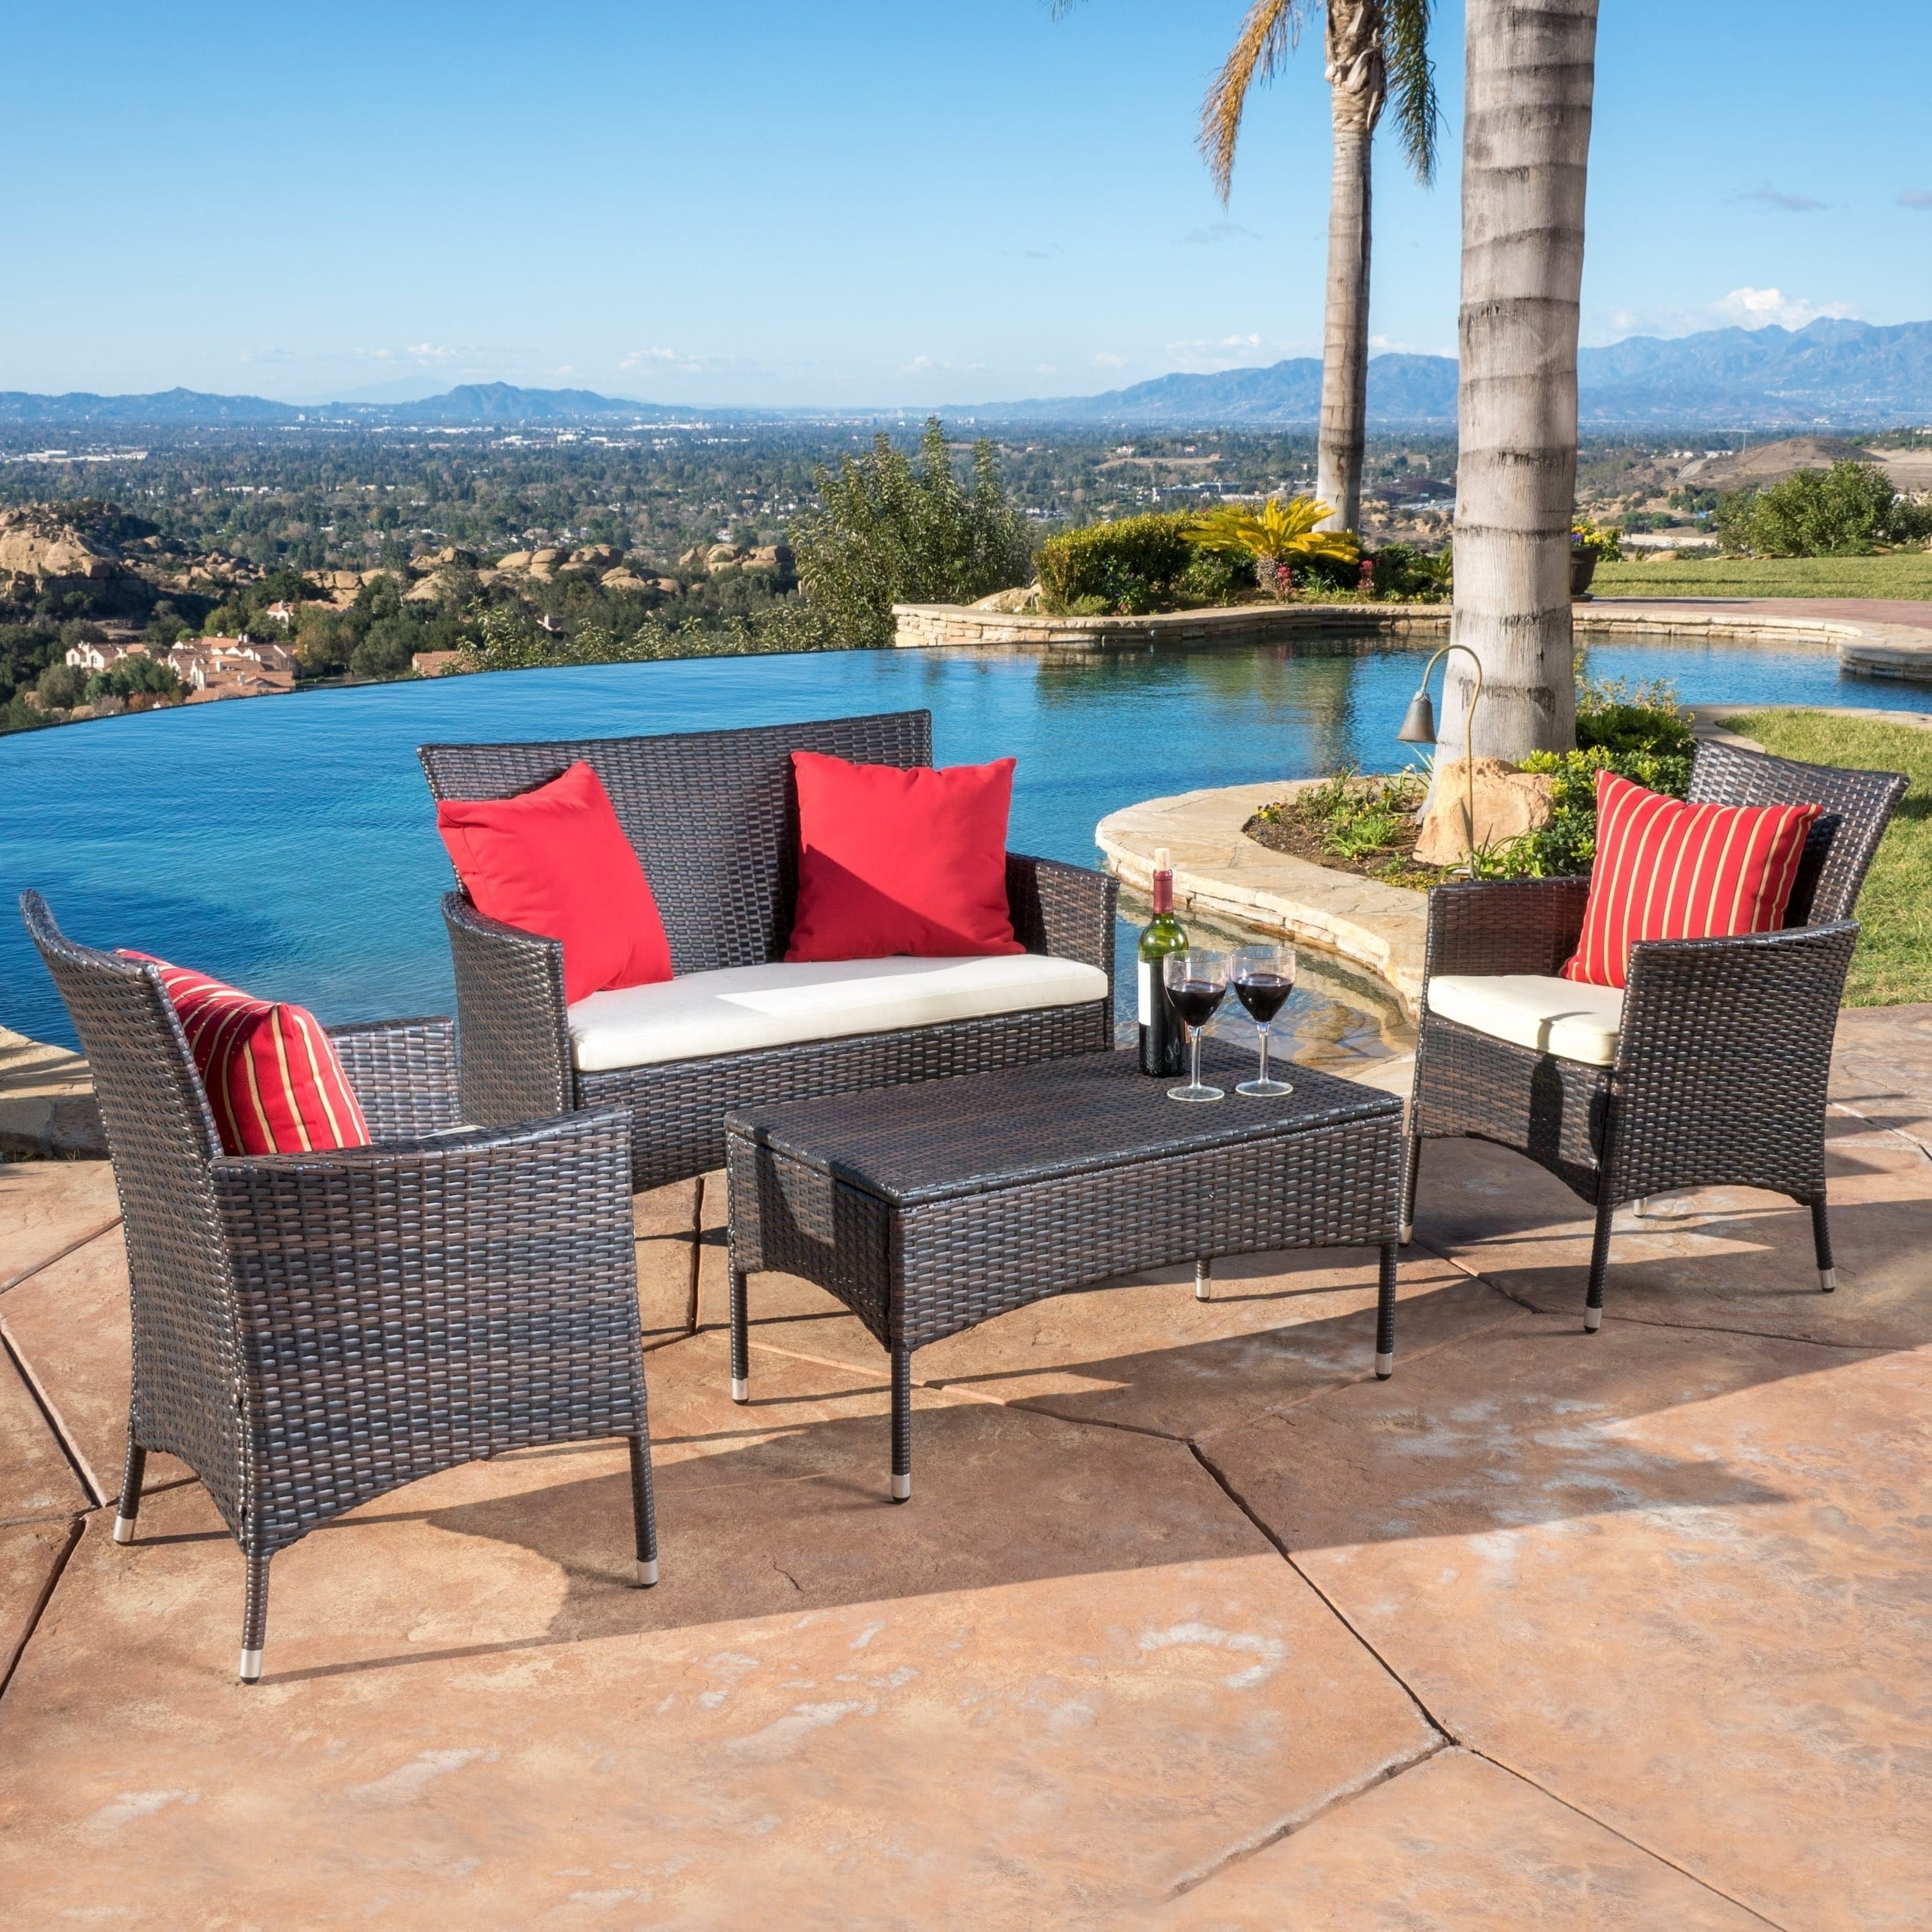 Trendy Patio Conversation Sets Under 200 Regarding Shop Malta Outdoor 4 Piece Wicker Chat Set With Cushions (View 20 of 20)